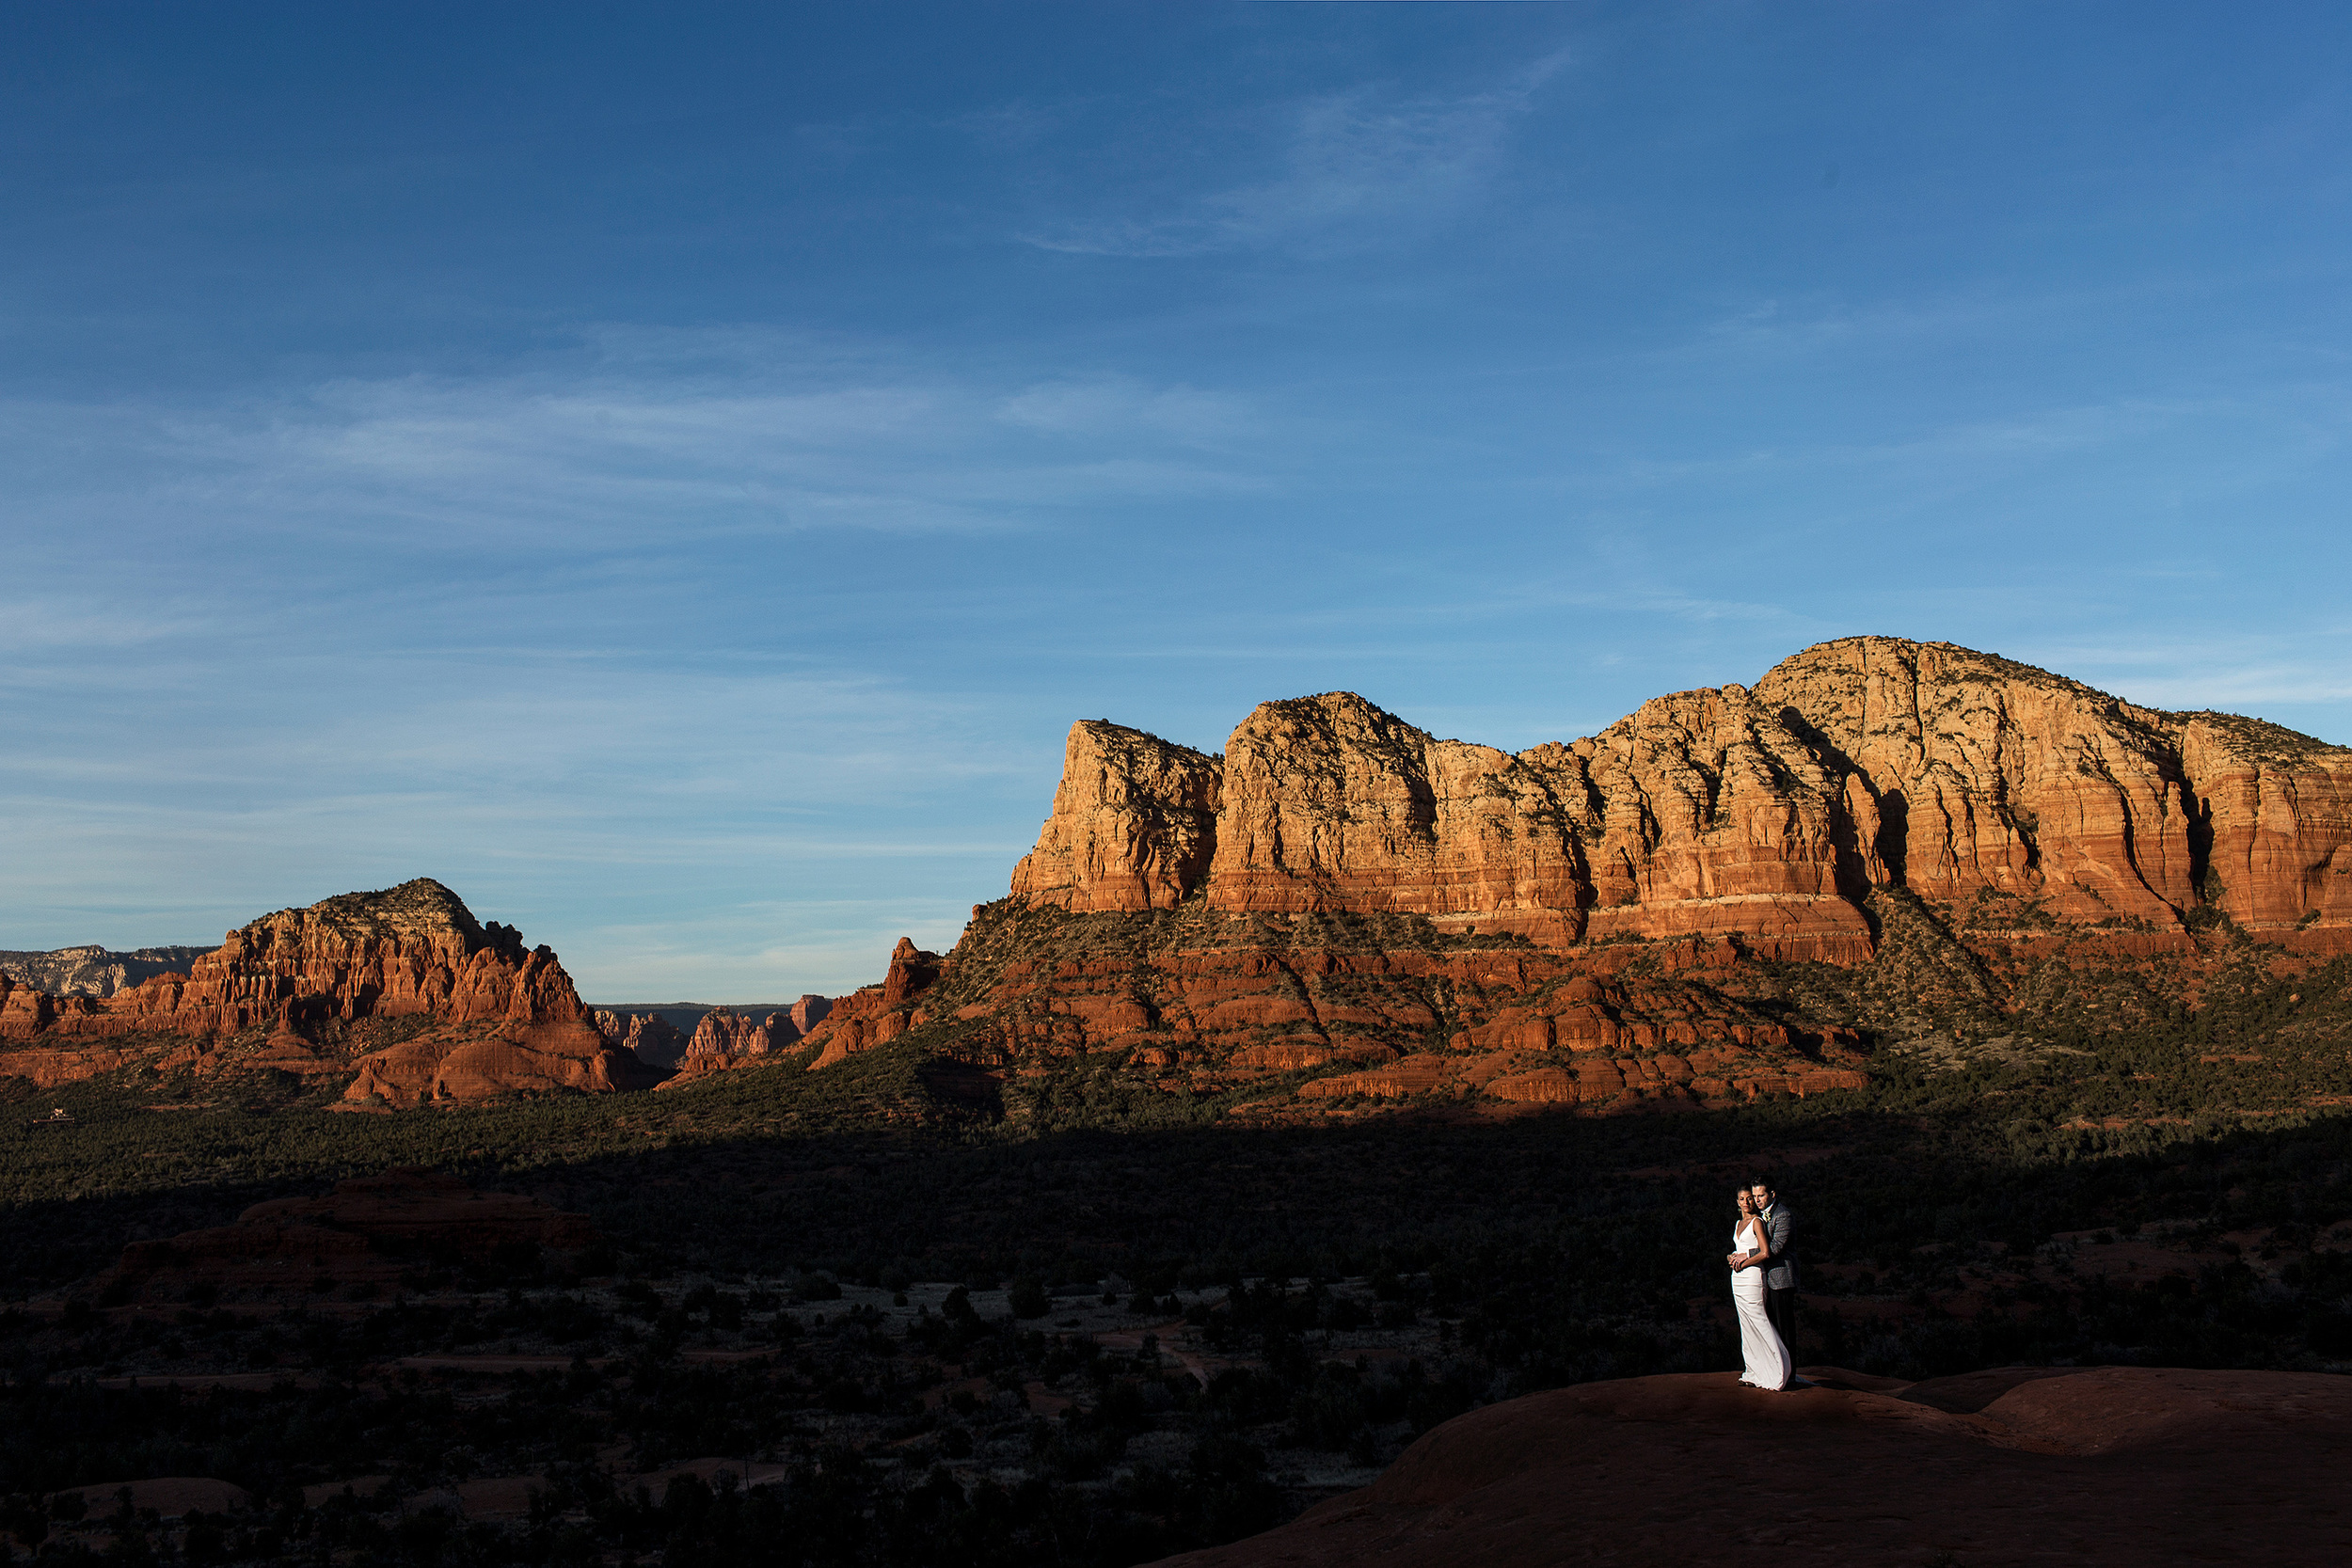 bride and groom sunset portrait with sandstone formations of Sedona Arizona in the background